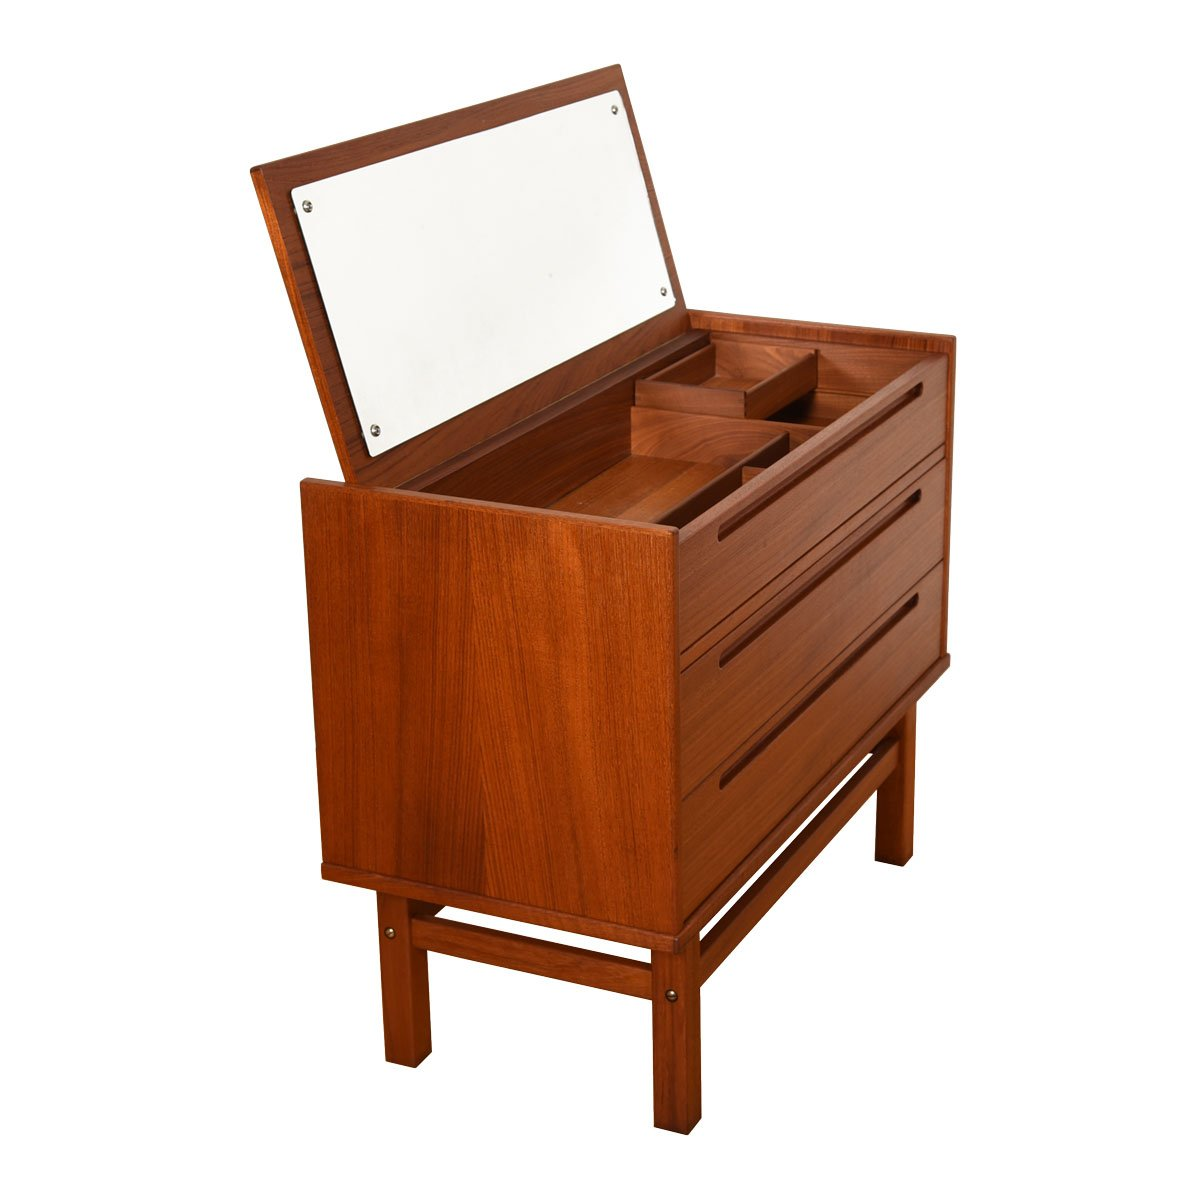 Danish Modern Teak Chest / Vanity by Torring